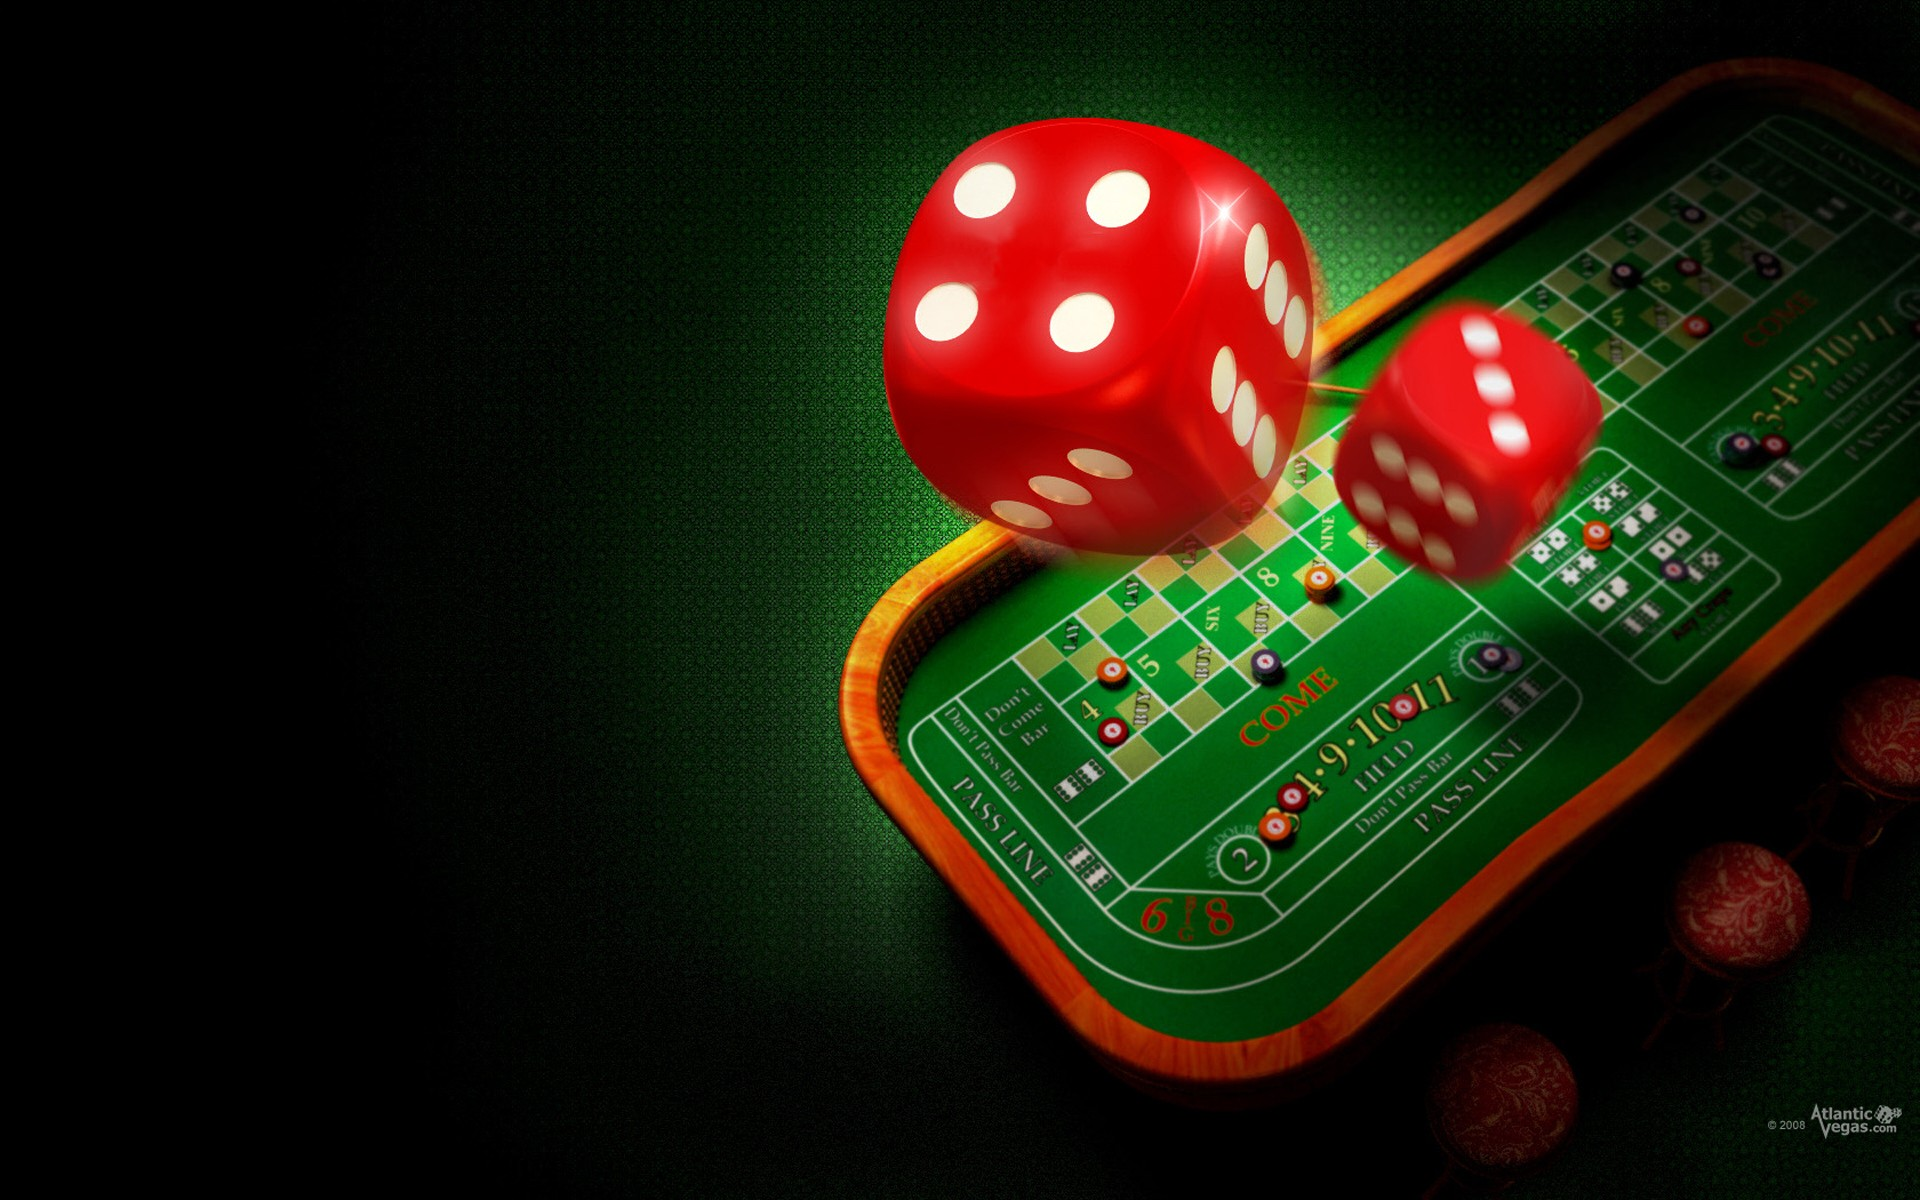 Uncovers The Misleading Practices Of Online Casino